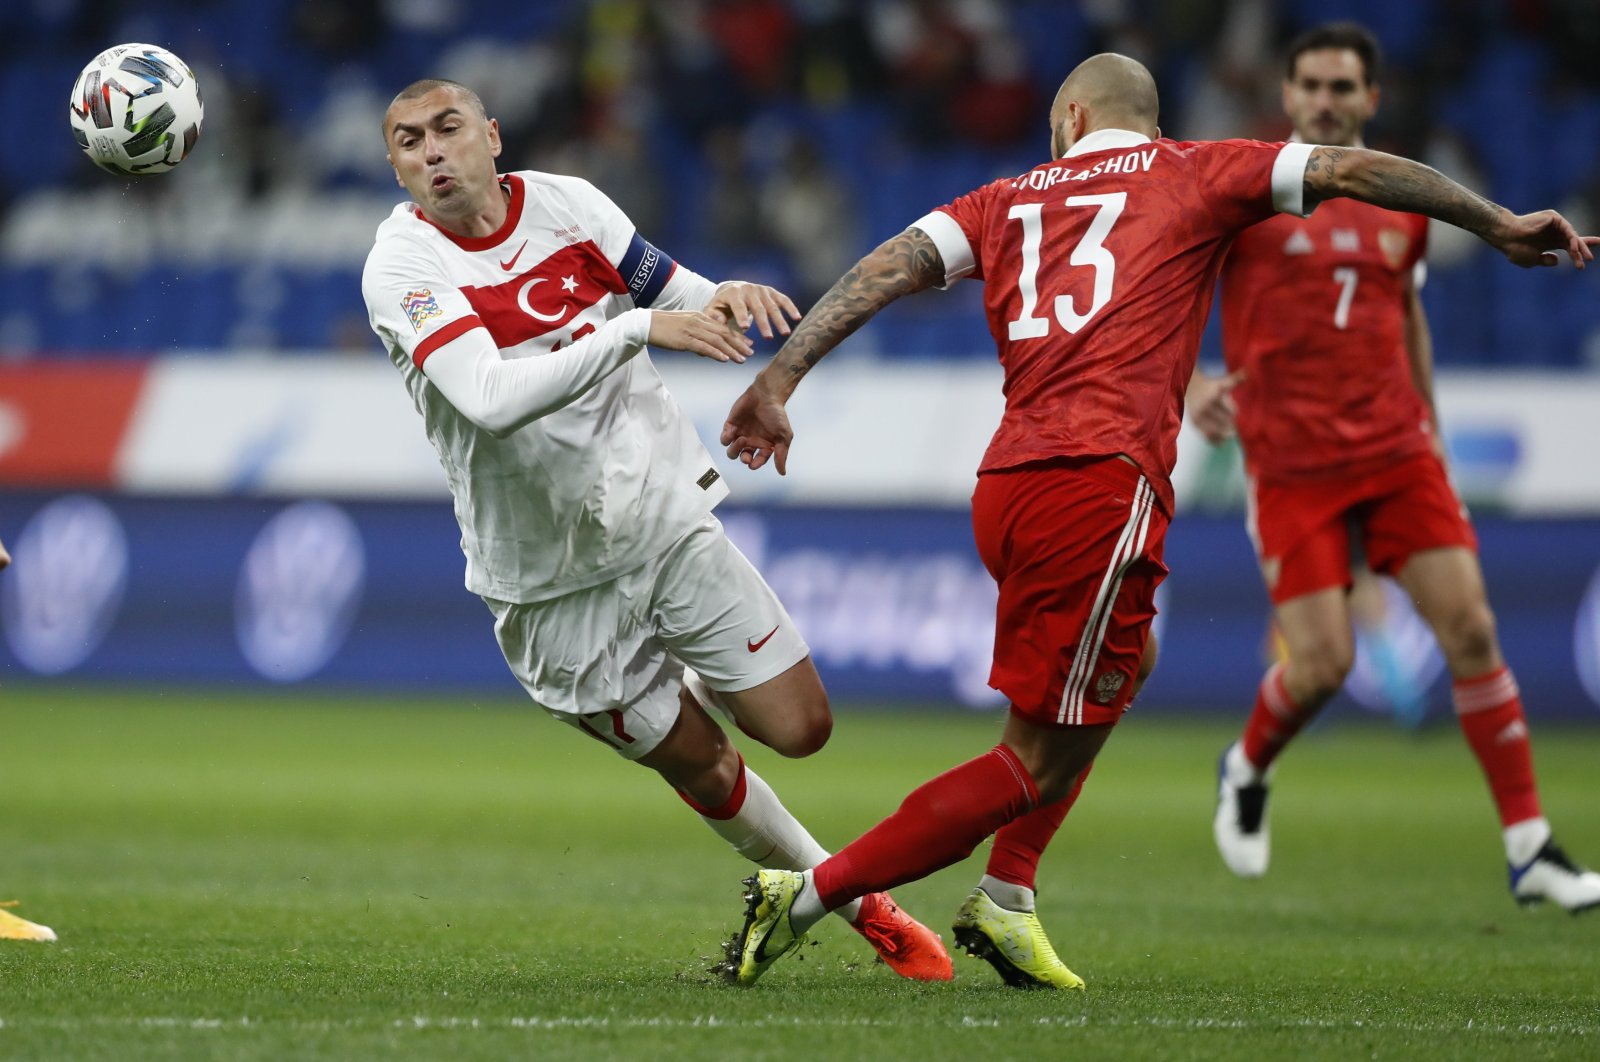 Turkey's Burak Yımaz (L) and Russia's Fyodor Kudryashov battle for the ball during a UEFA Nations League match in Moscow, Russia, Oct. 11, 2020. (AP Photo)